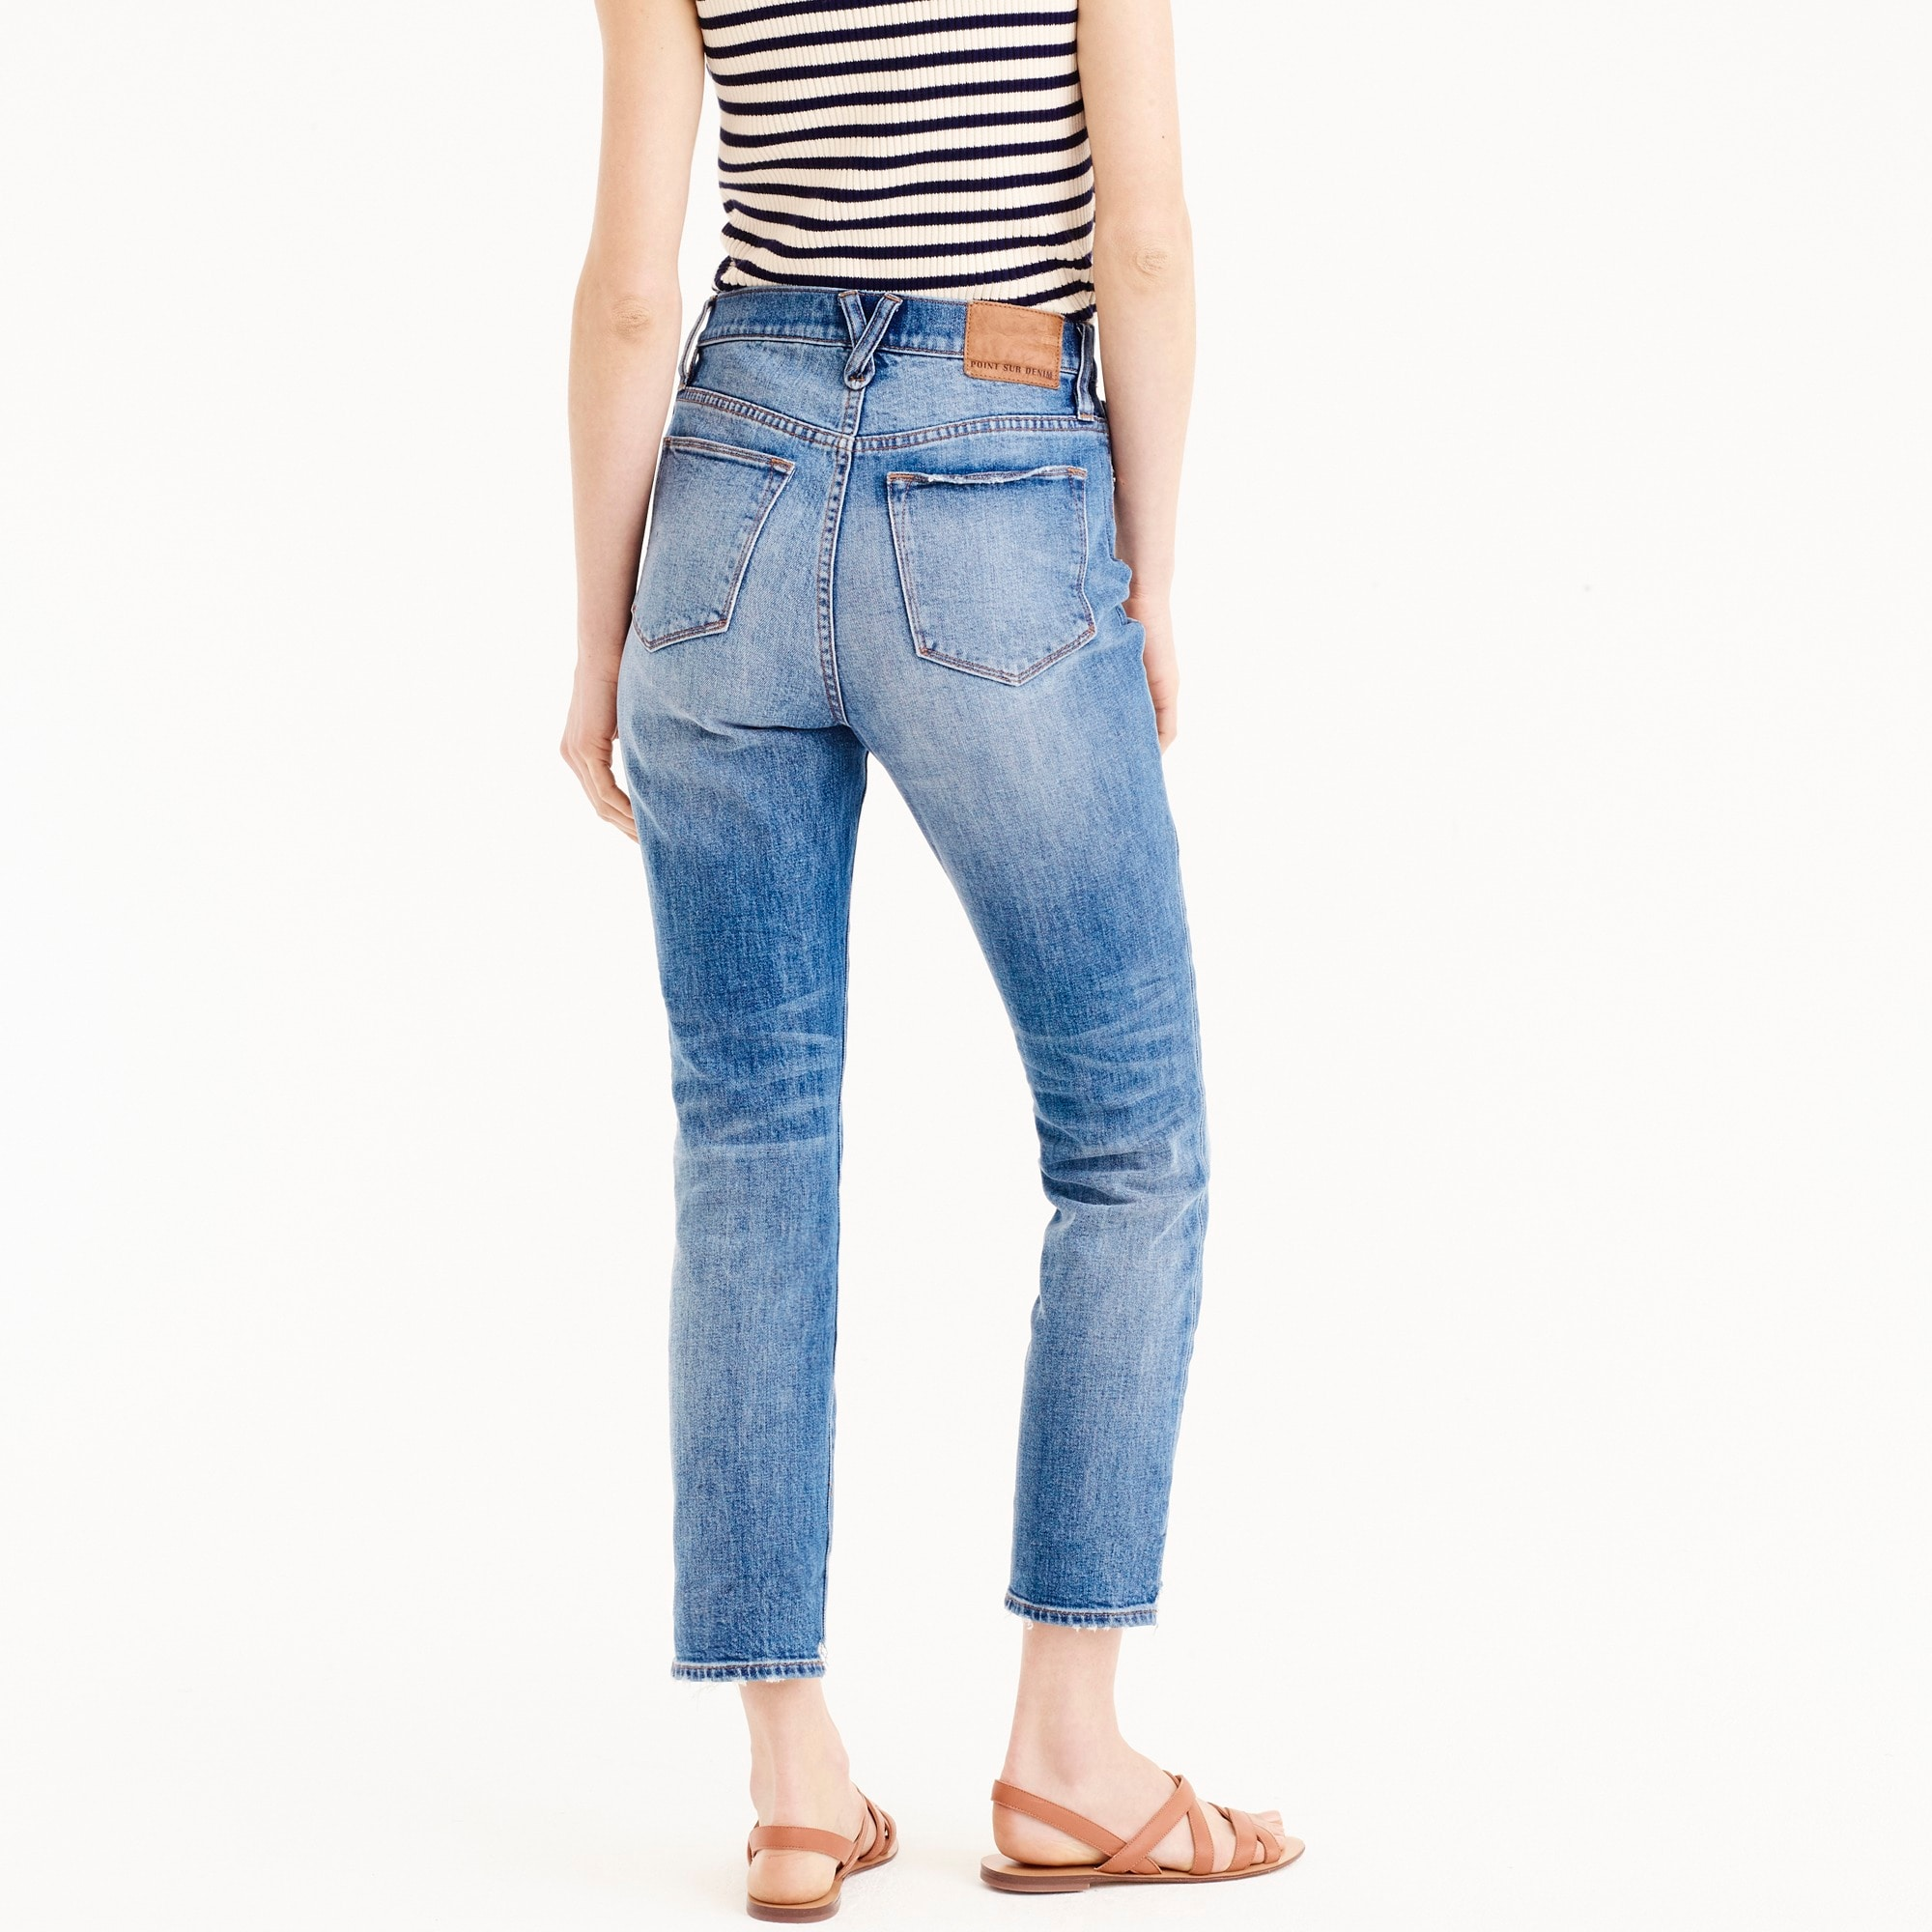 Image 3 for Tall Point Sur high-rise boyfriend jean with uneven hems